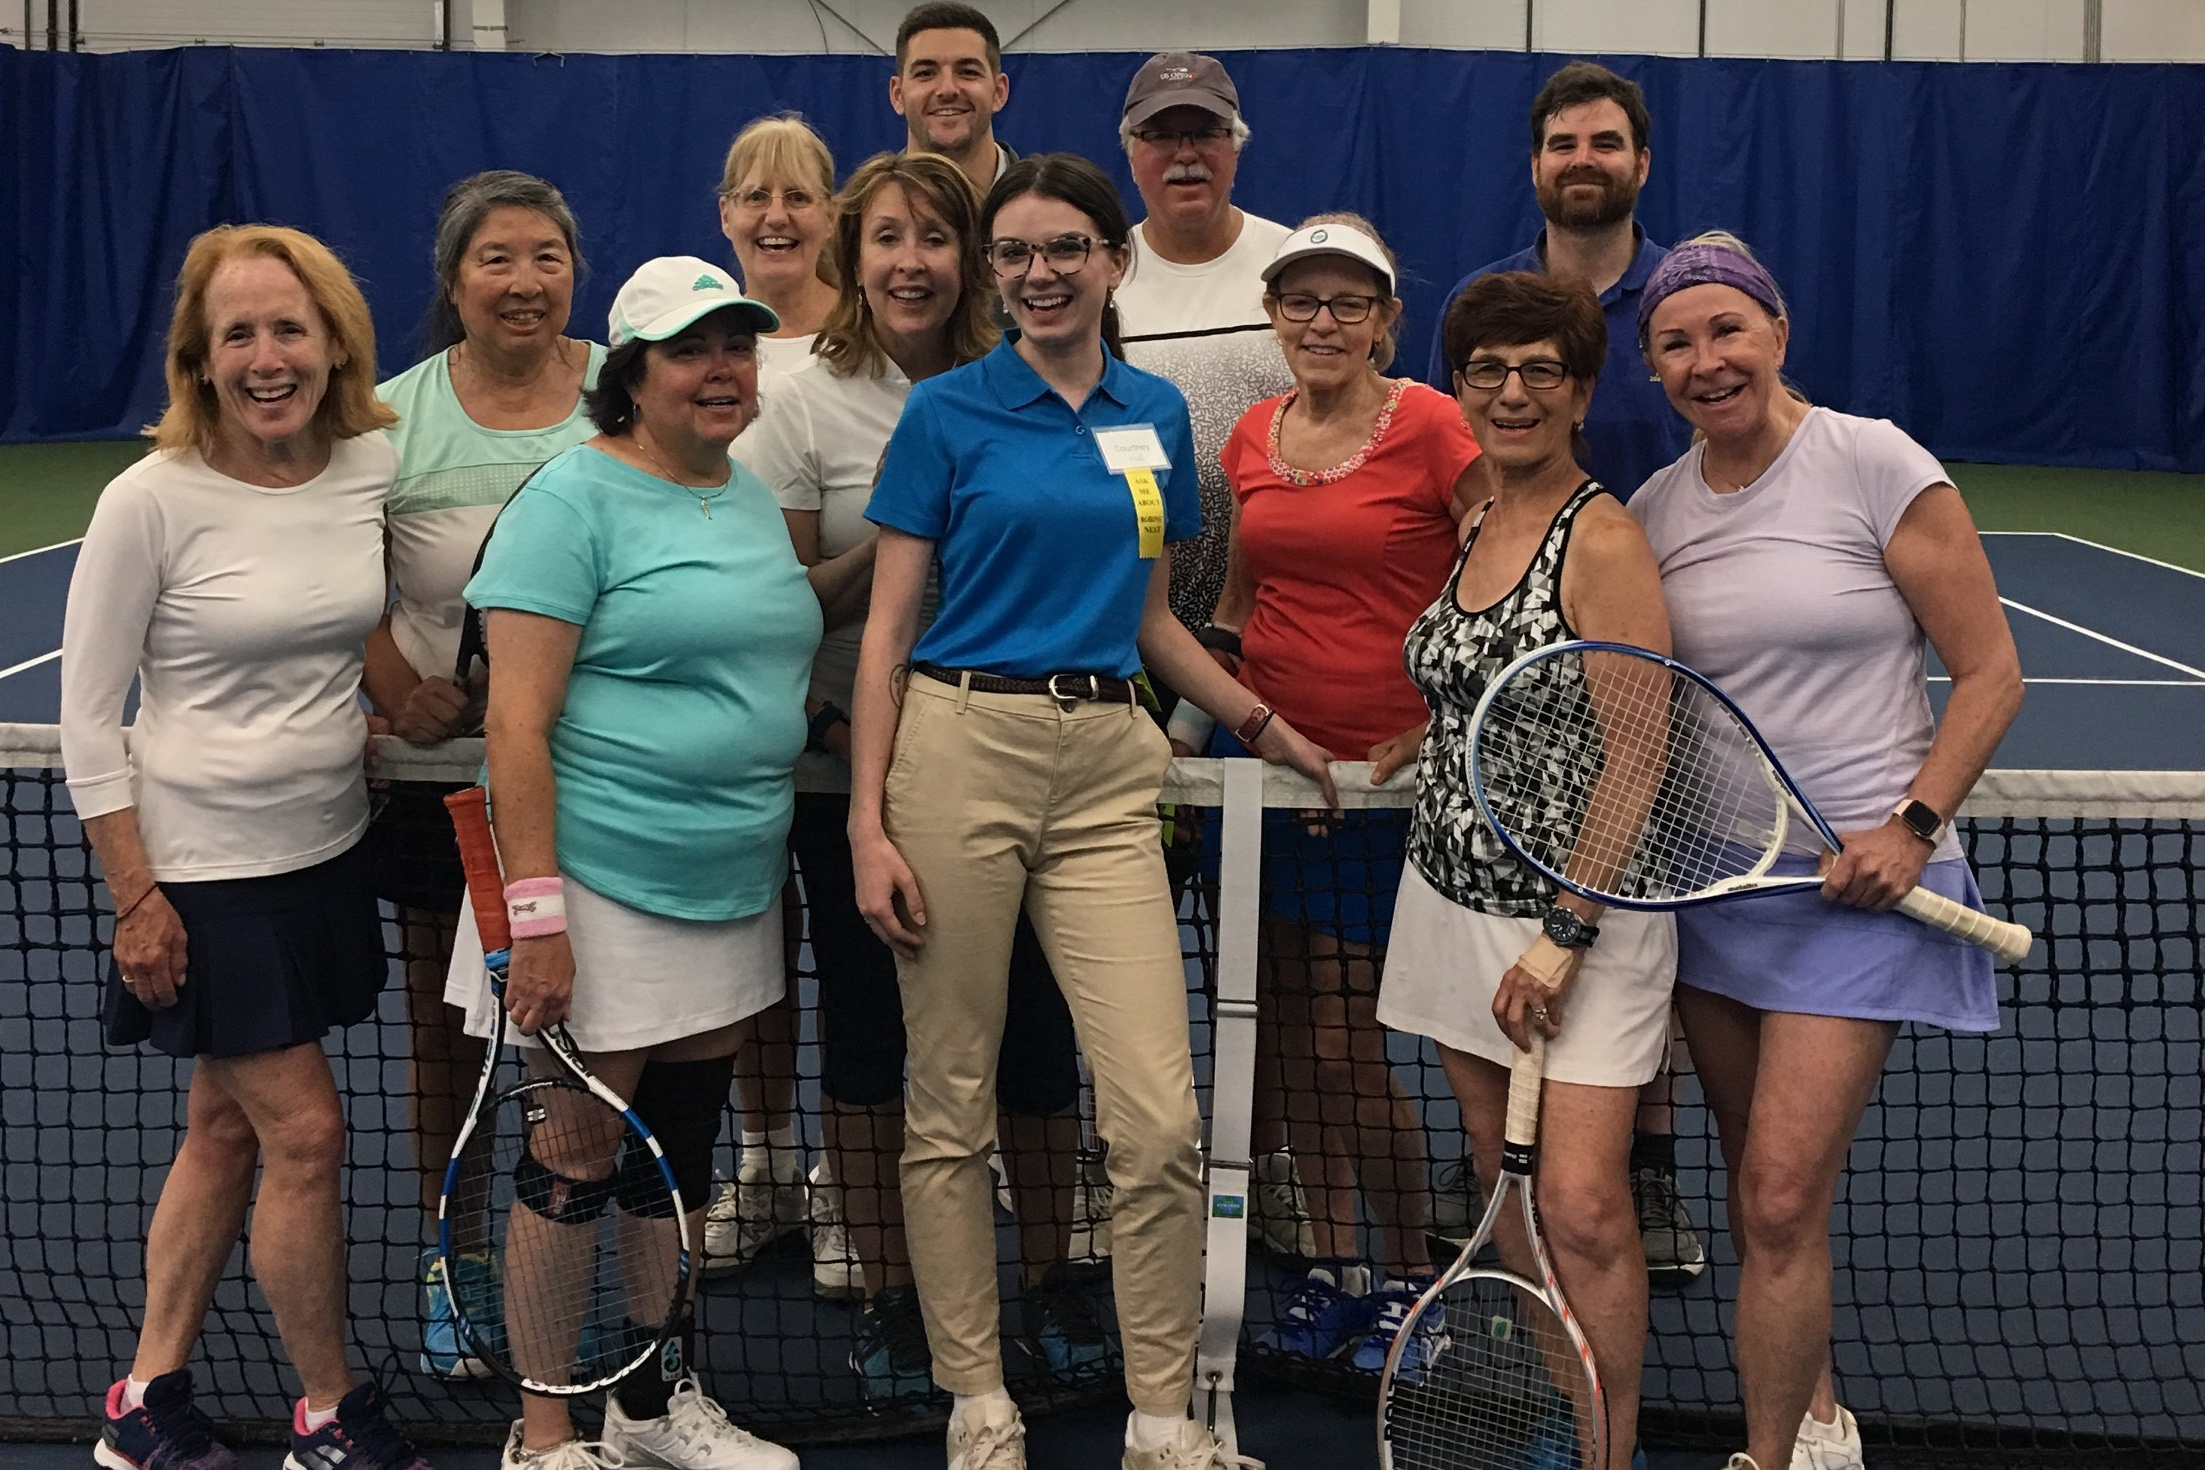 2019 Golf & Tennis Classic - Tennis Players